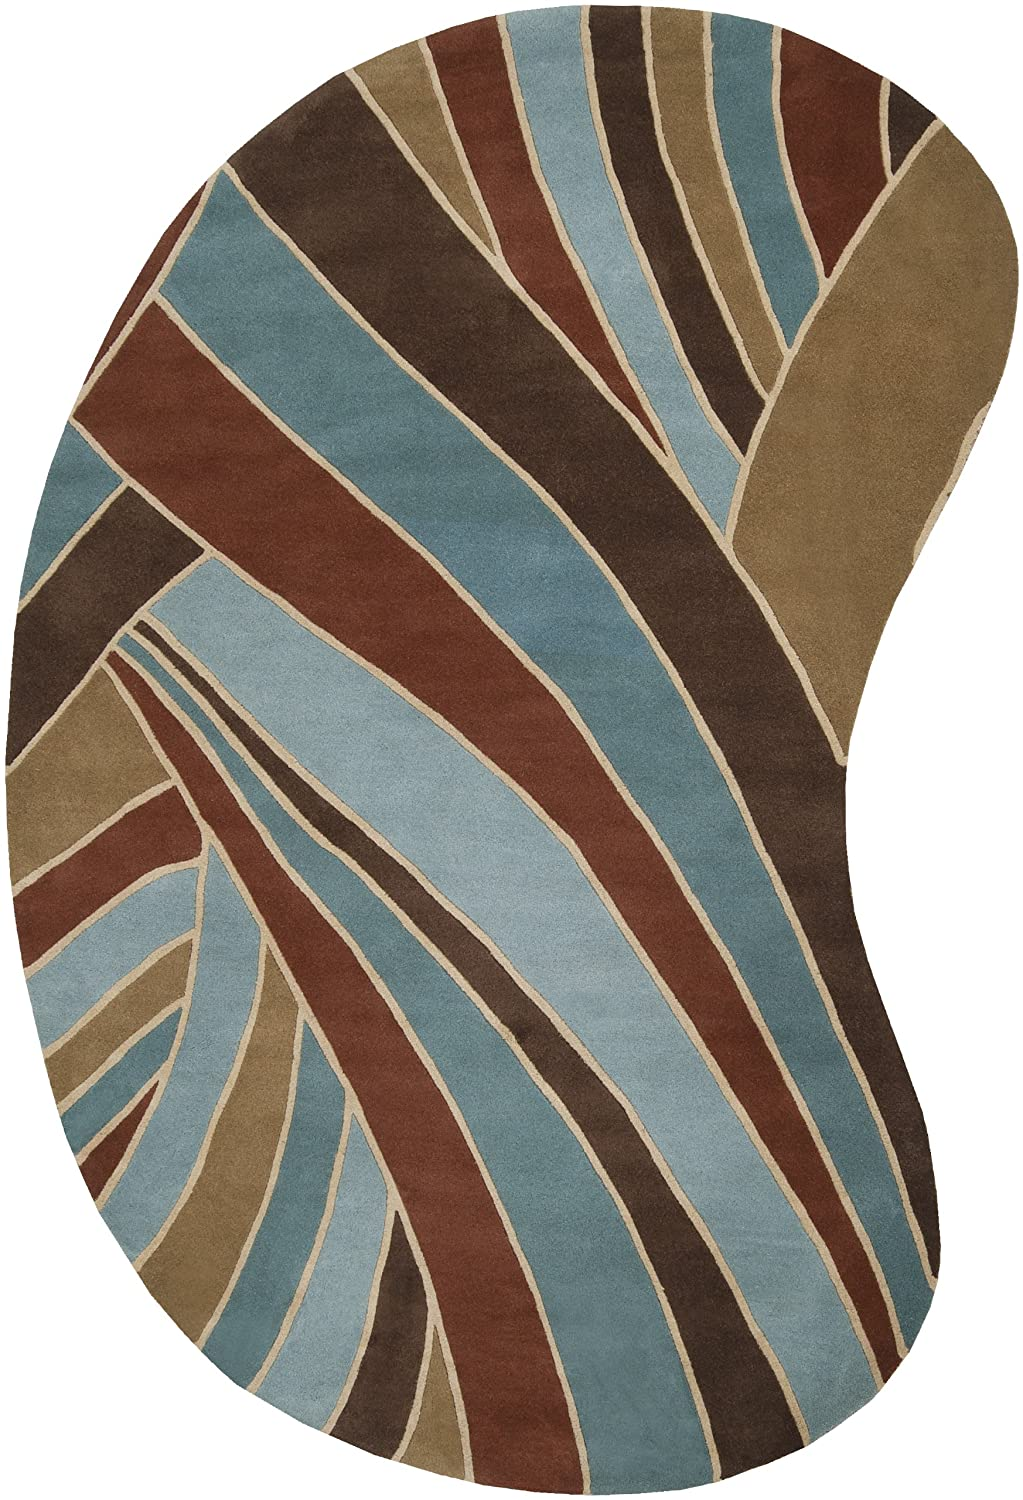 Amazon.com: Surya Forum FM-7002 Contemporary Hand Tufted 100% Wool ... - Amazon.com: Surya Forum FM-7002 Contemporary Hand Tufted 100% Wool Russet  5' x 8' Abstract Area Rug: Kitchen & Dining